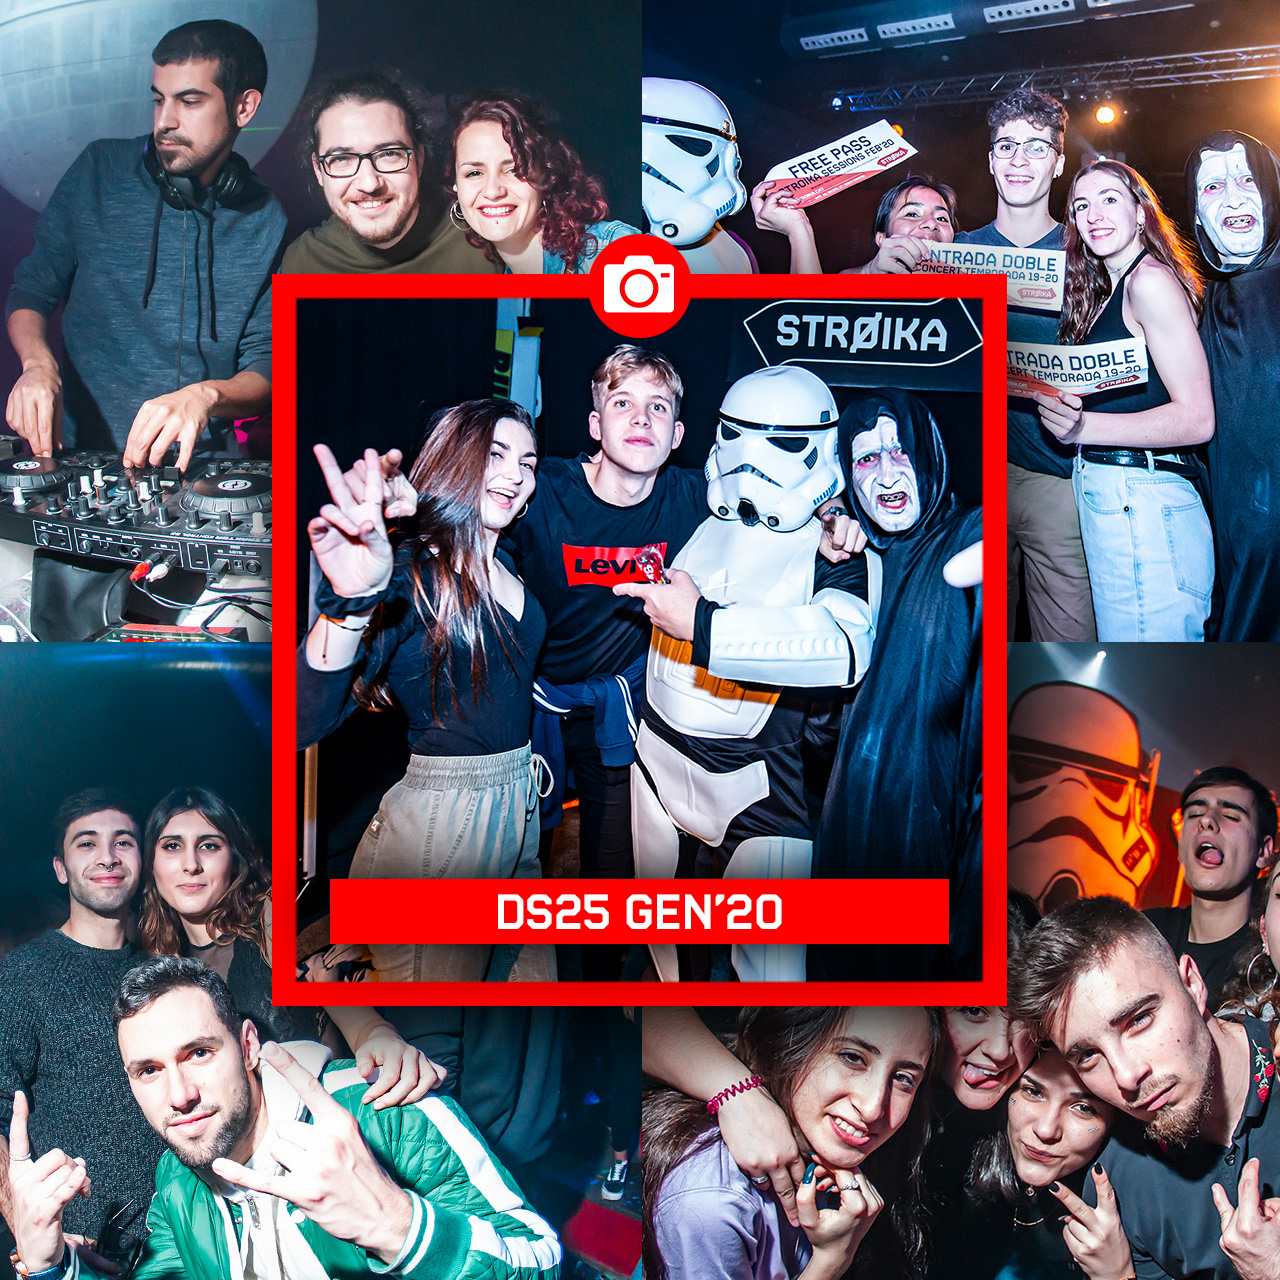 DS25 GEN'20 // STAR WARS PARTY